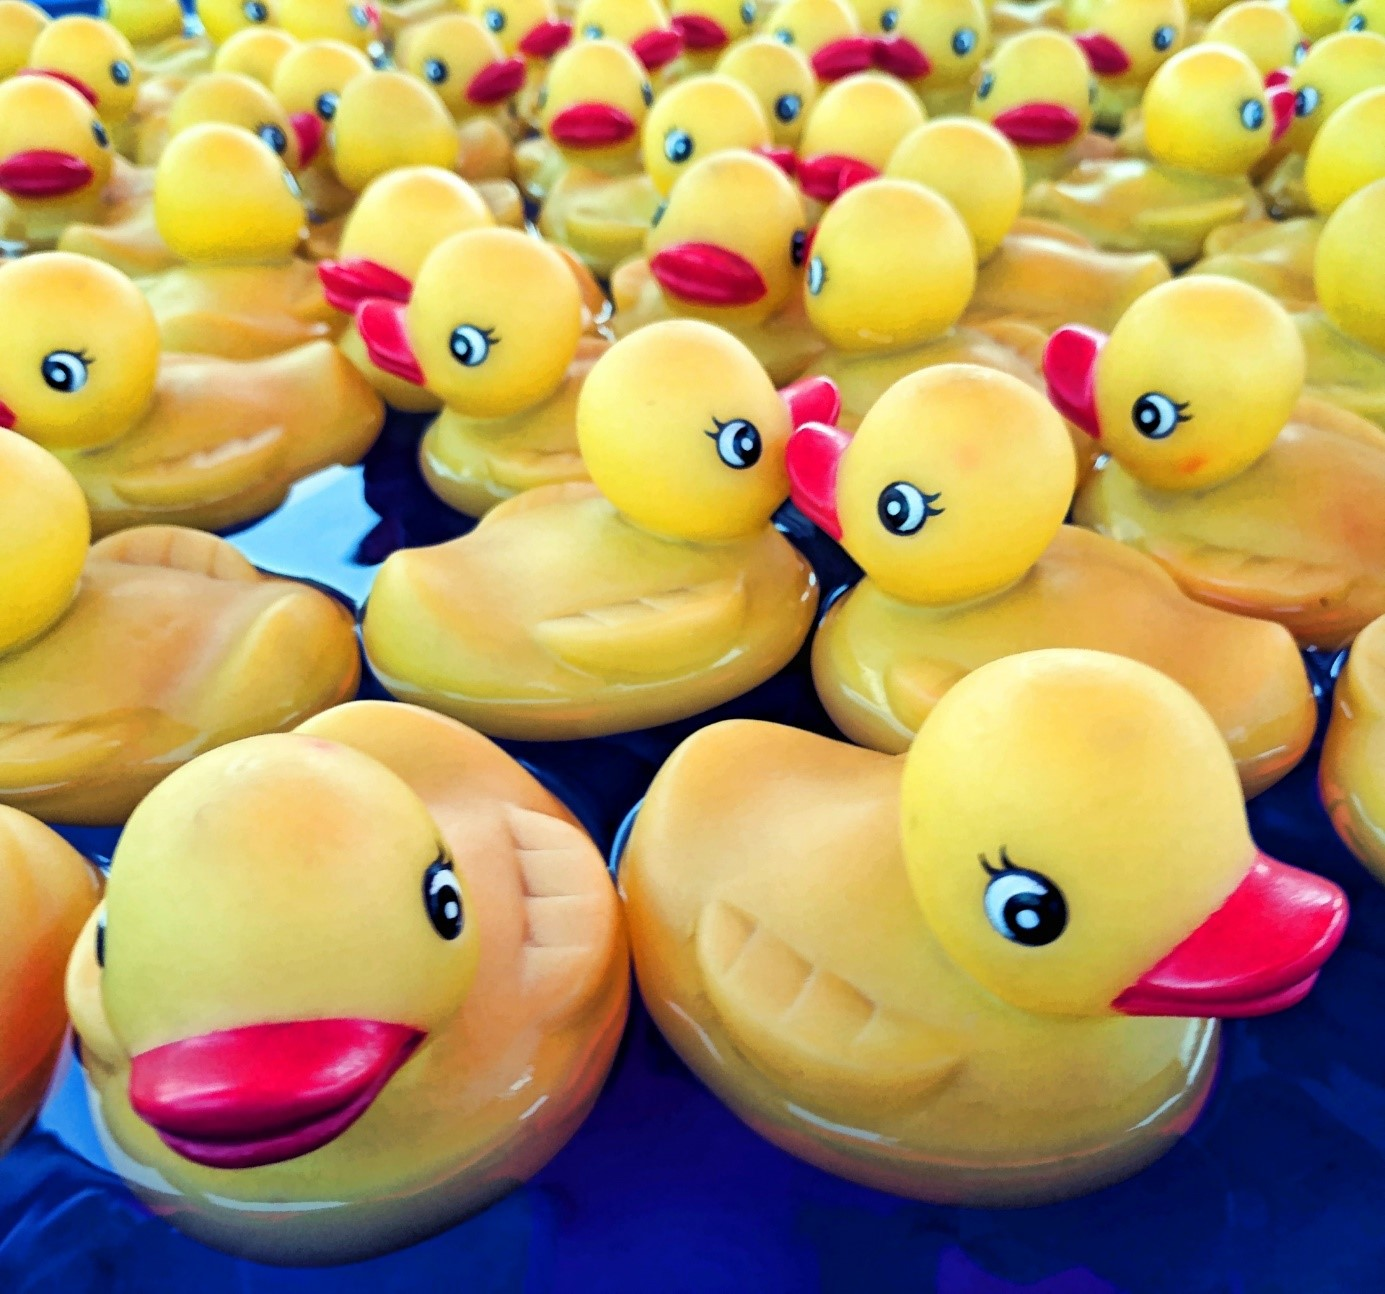 Rubber ducks floating on water